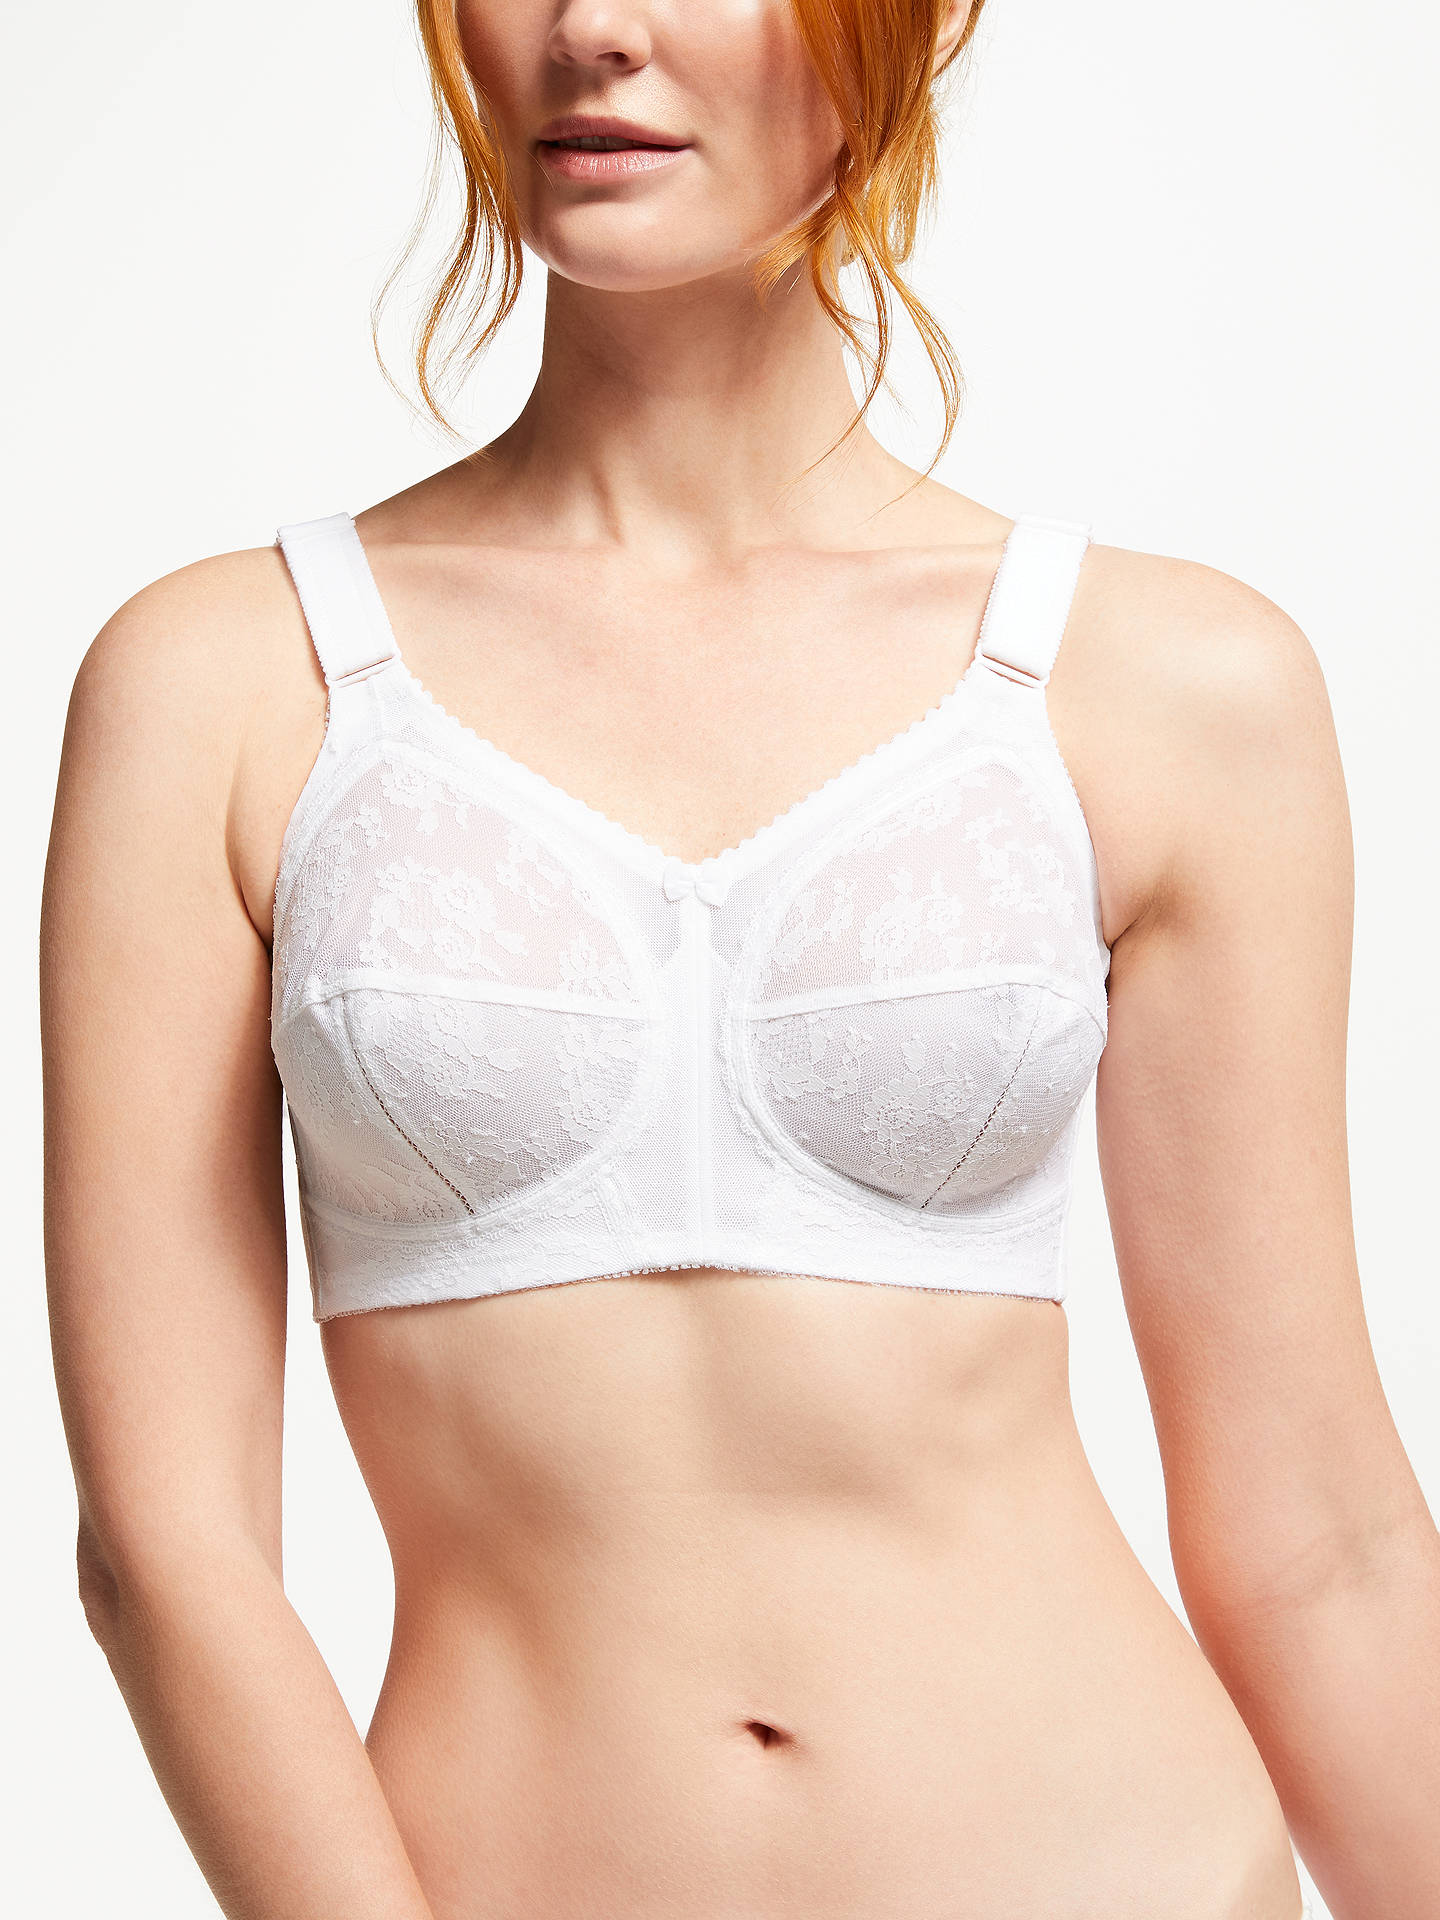 BuyTriumph Doreen Non Wired Bra, White, 34B Online at johnlewis.com